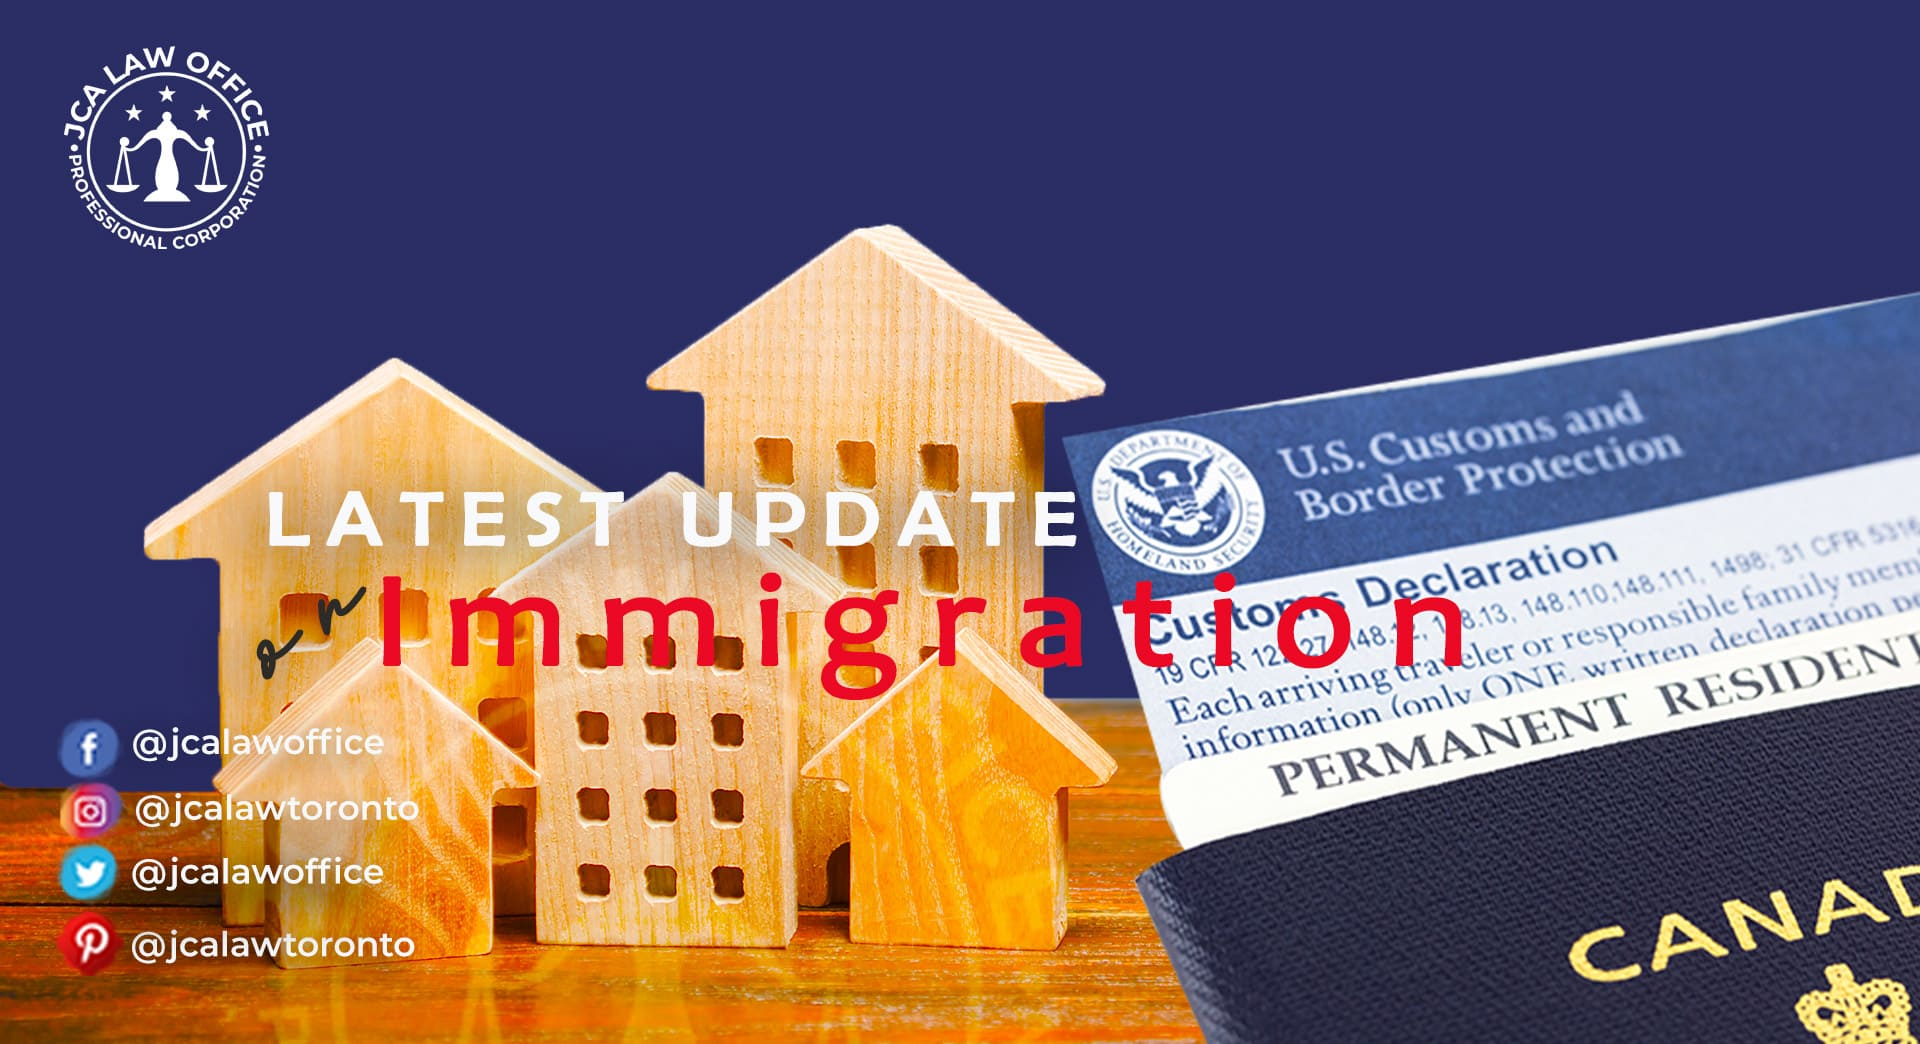 Immigration-Lawyer-Latest-Update-Image-JCA-Law-Office-Professional-Corporation